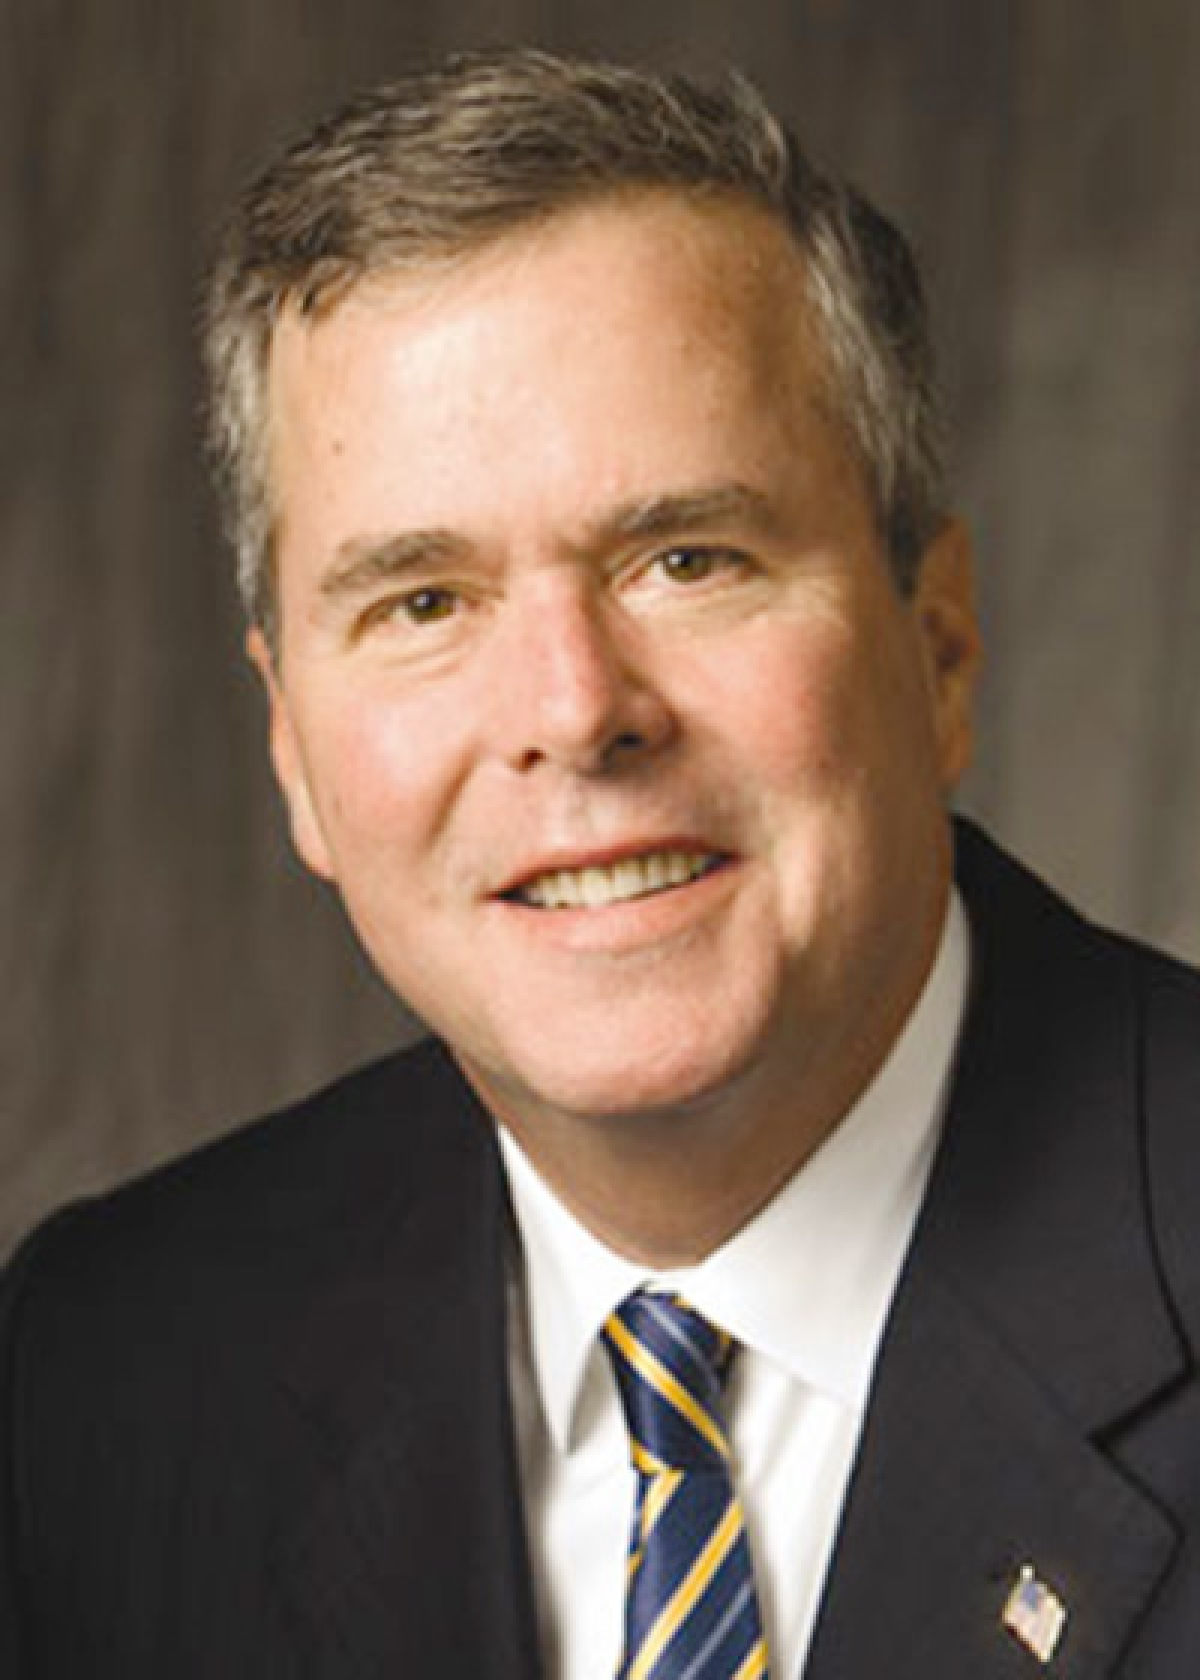 Another Bush for Presidency?